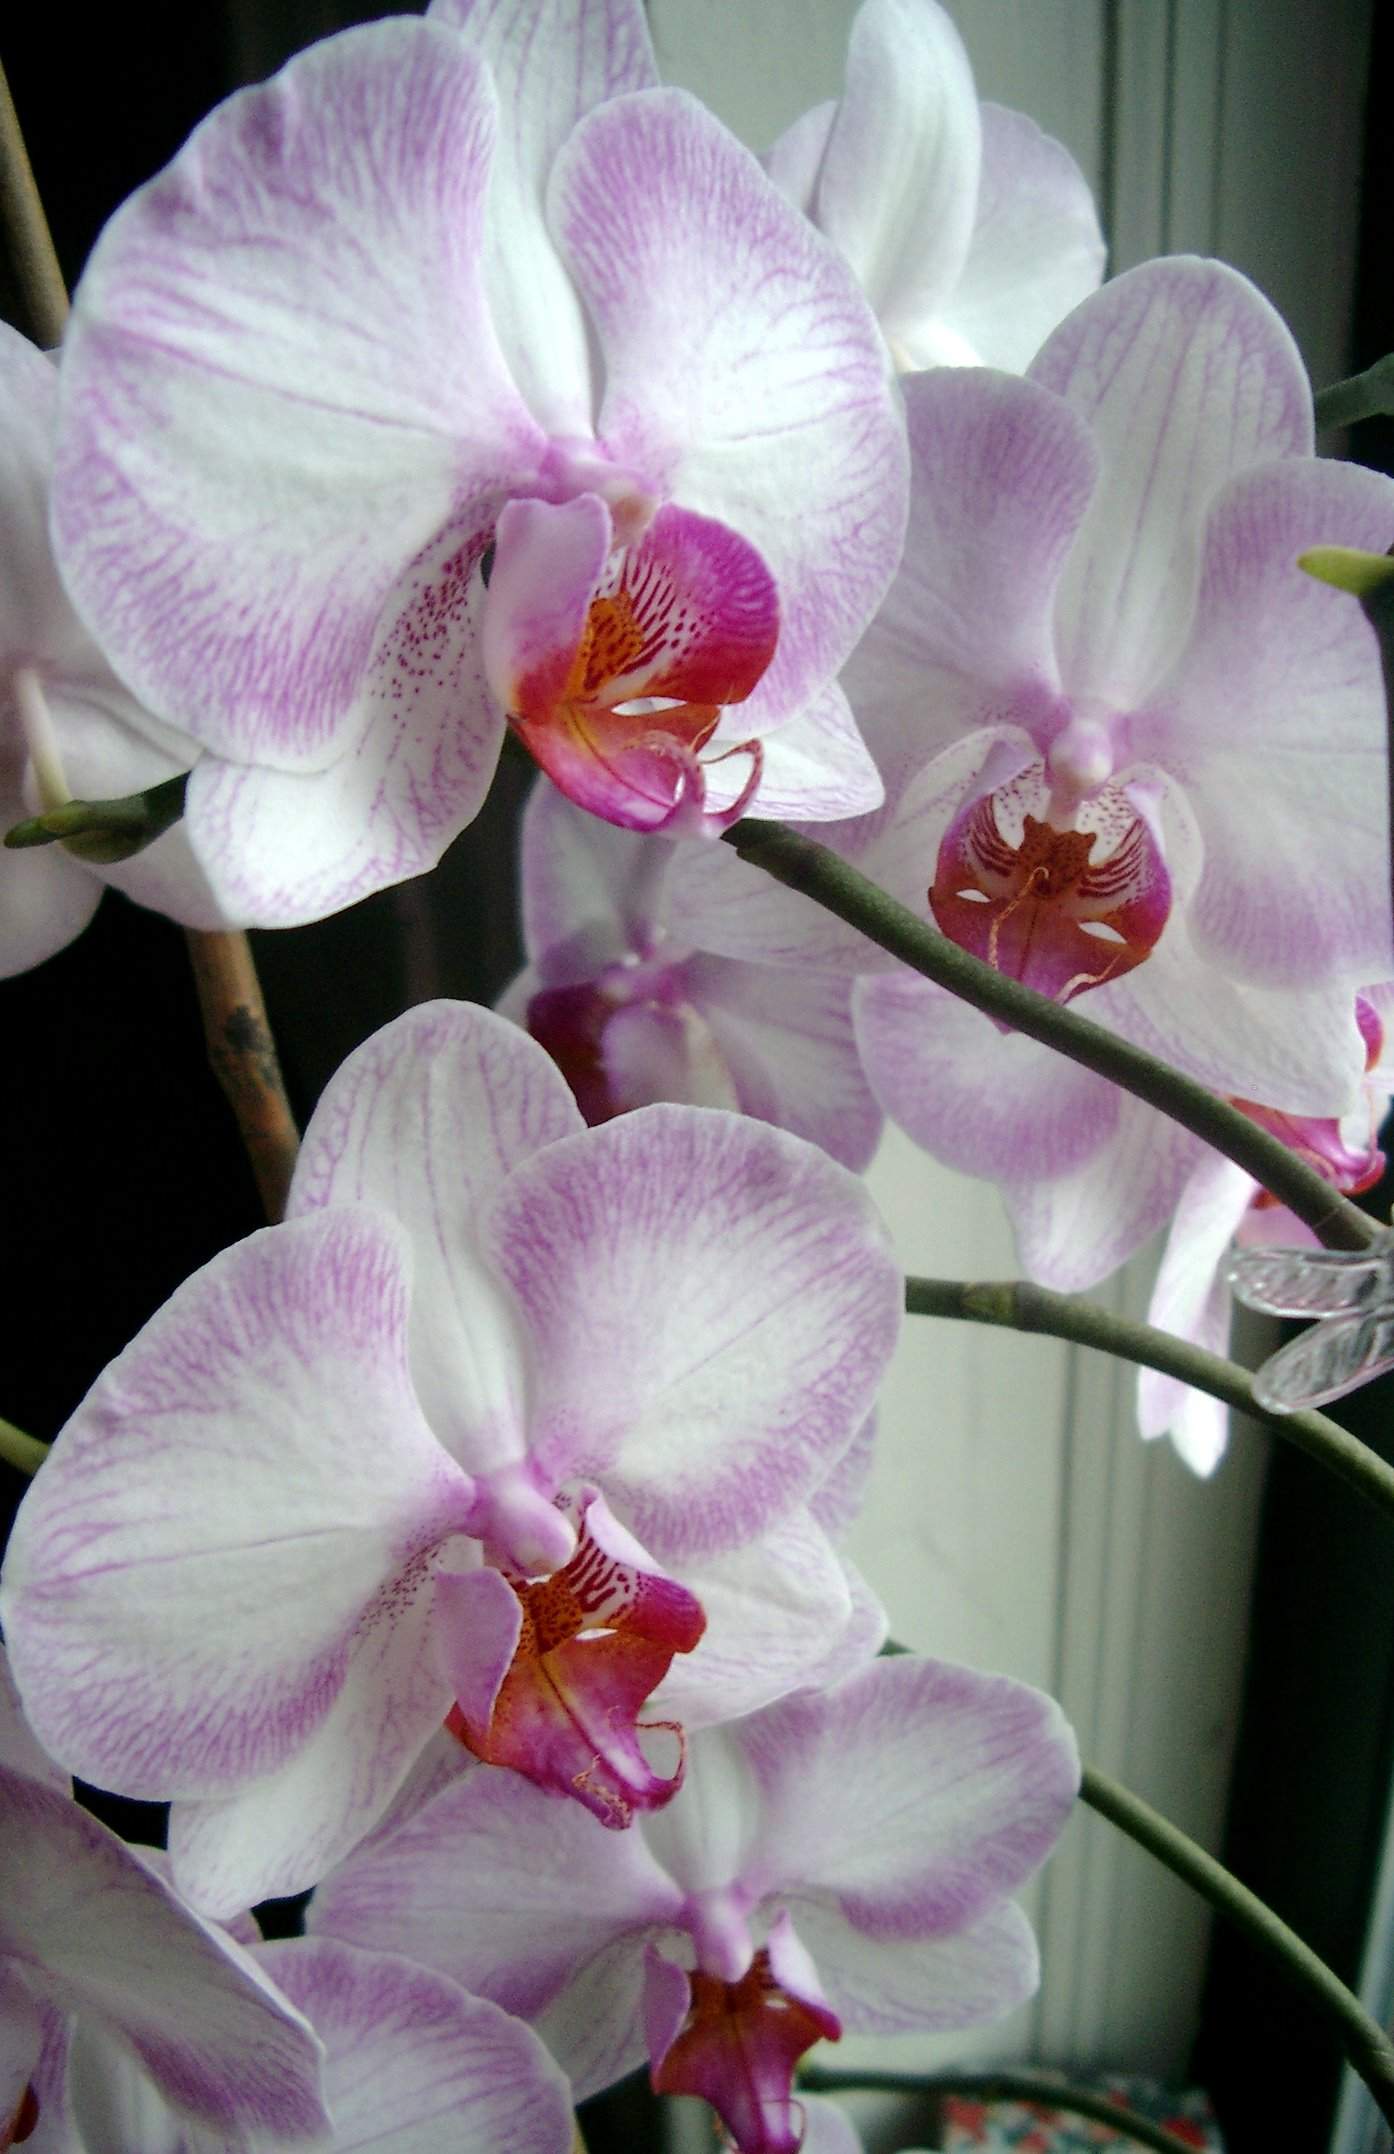 types of orchids  orchid flowers, Natural flower